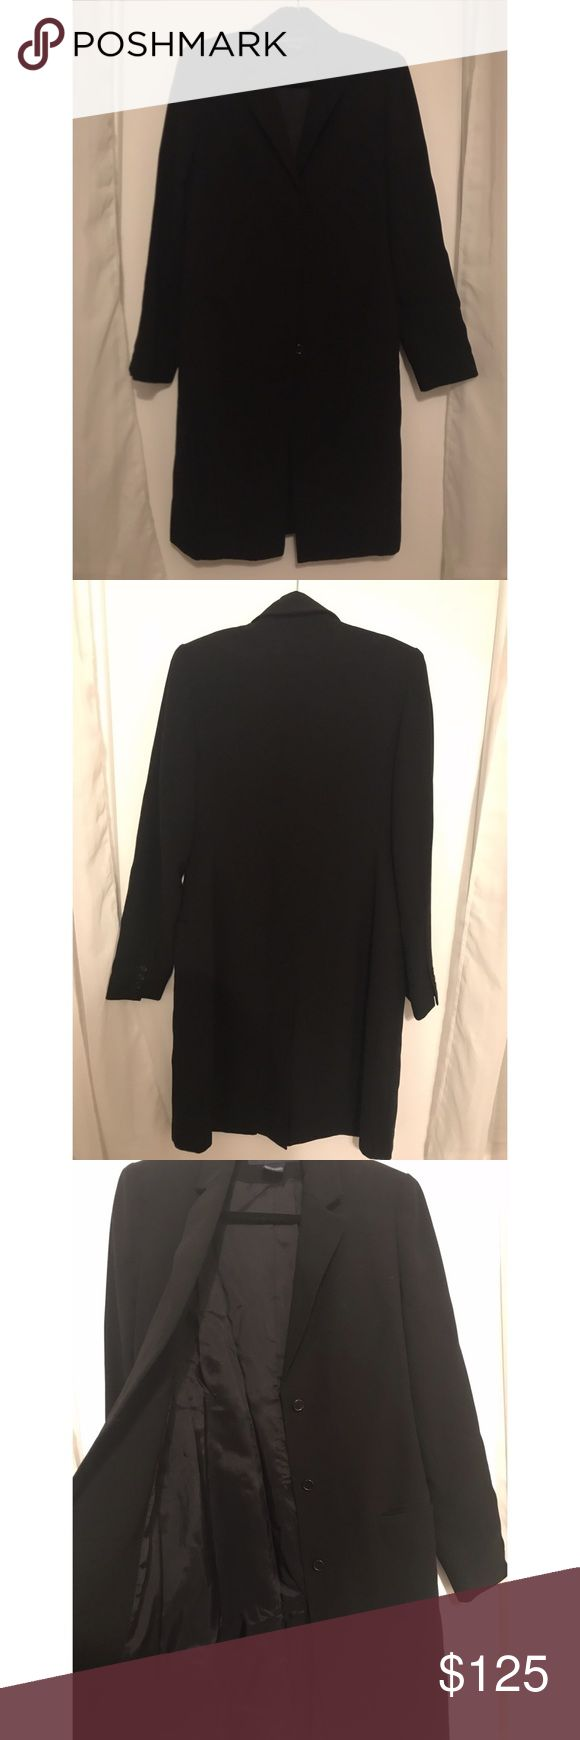 French Connection Dress Jacket Lightly used! Great condition!!  Black, padded shoulders with a split back! French Connection Jackets & Coats Trench Coats